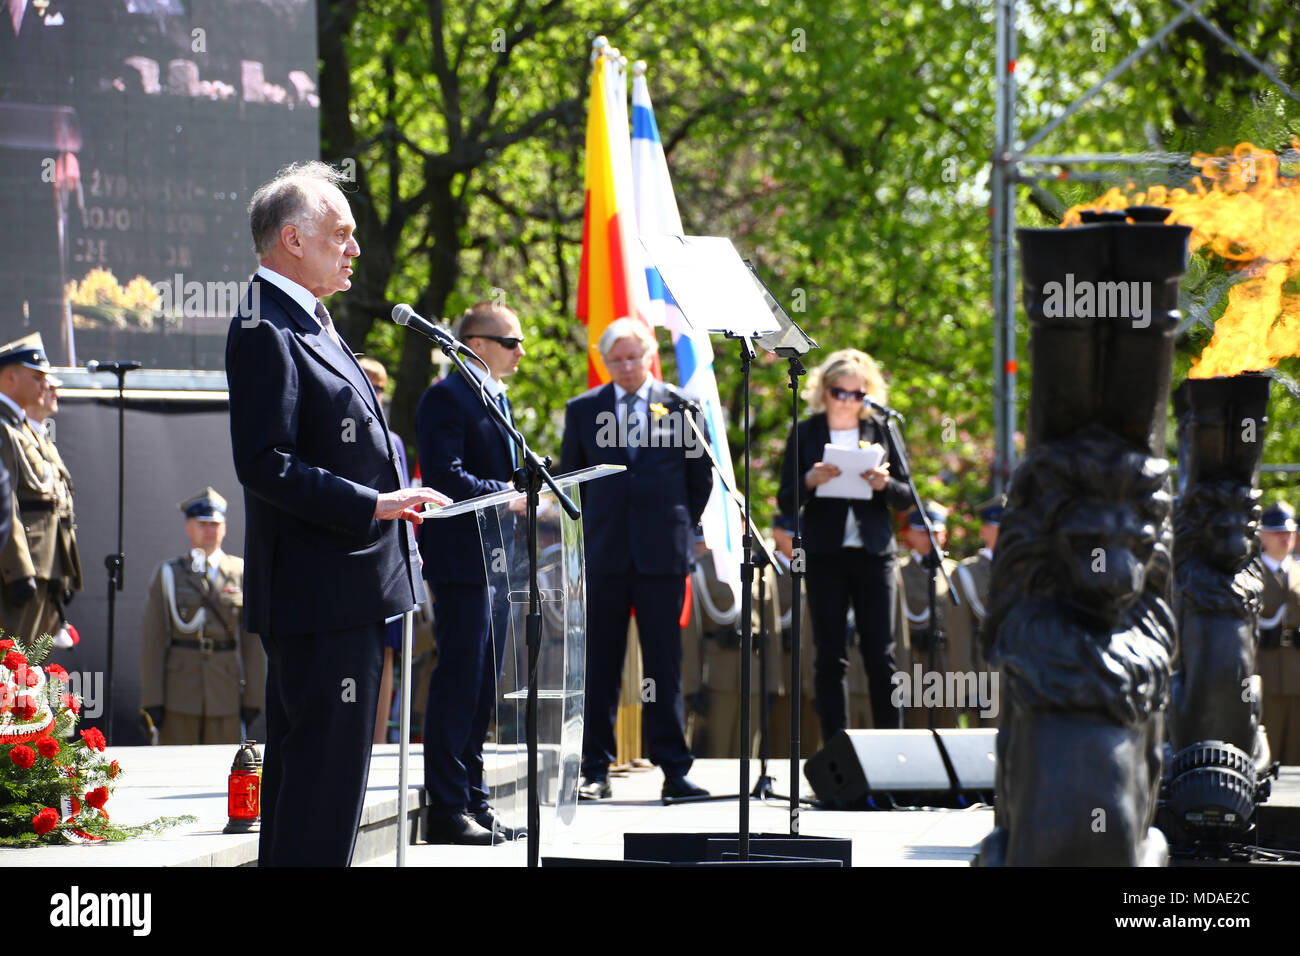 Poland, Warsaw, 19th April 2018: President Andrzej Duda join commemorations on 75th Warsaw ghetto uprising together with the President of the World Jewish Congress Ronald Lauder at the Jewsih cemetry and Ghetto Heroes Monument in Warsaw. ©Jake Ratz/Alamy Live News Stock Photo